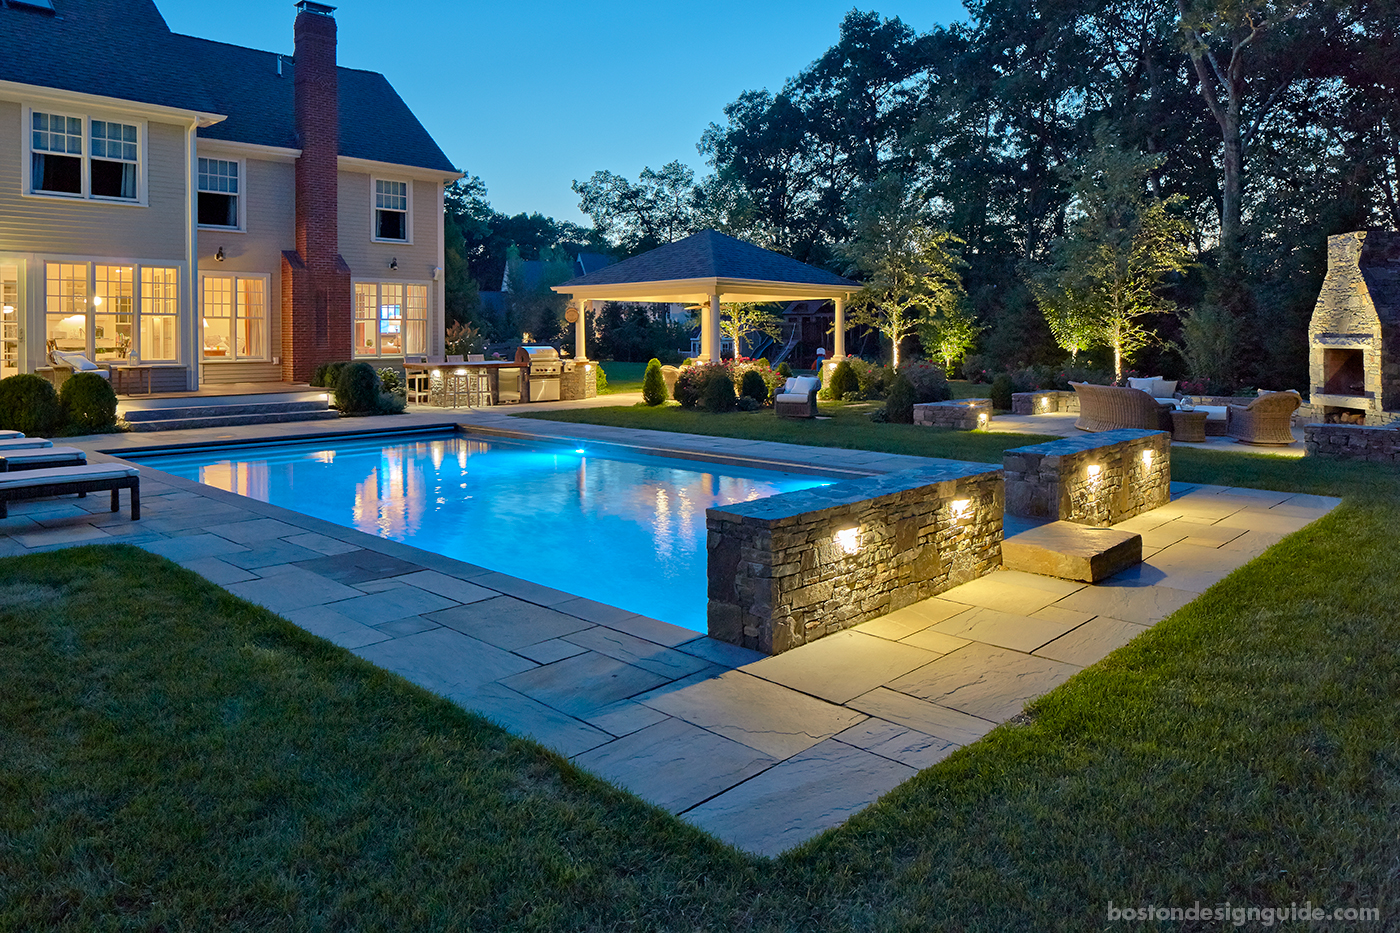 Pool terrace at night designed by a Blade of Grass